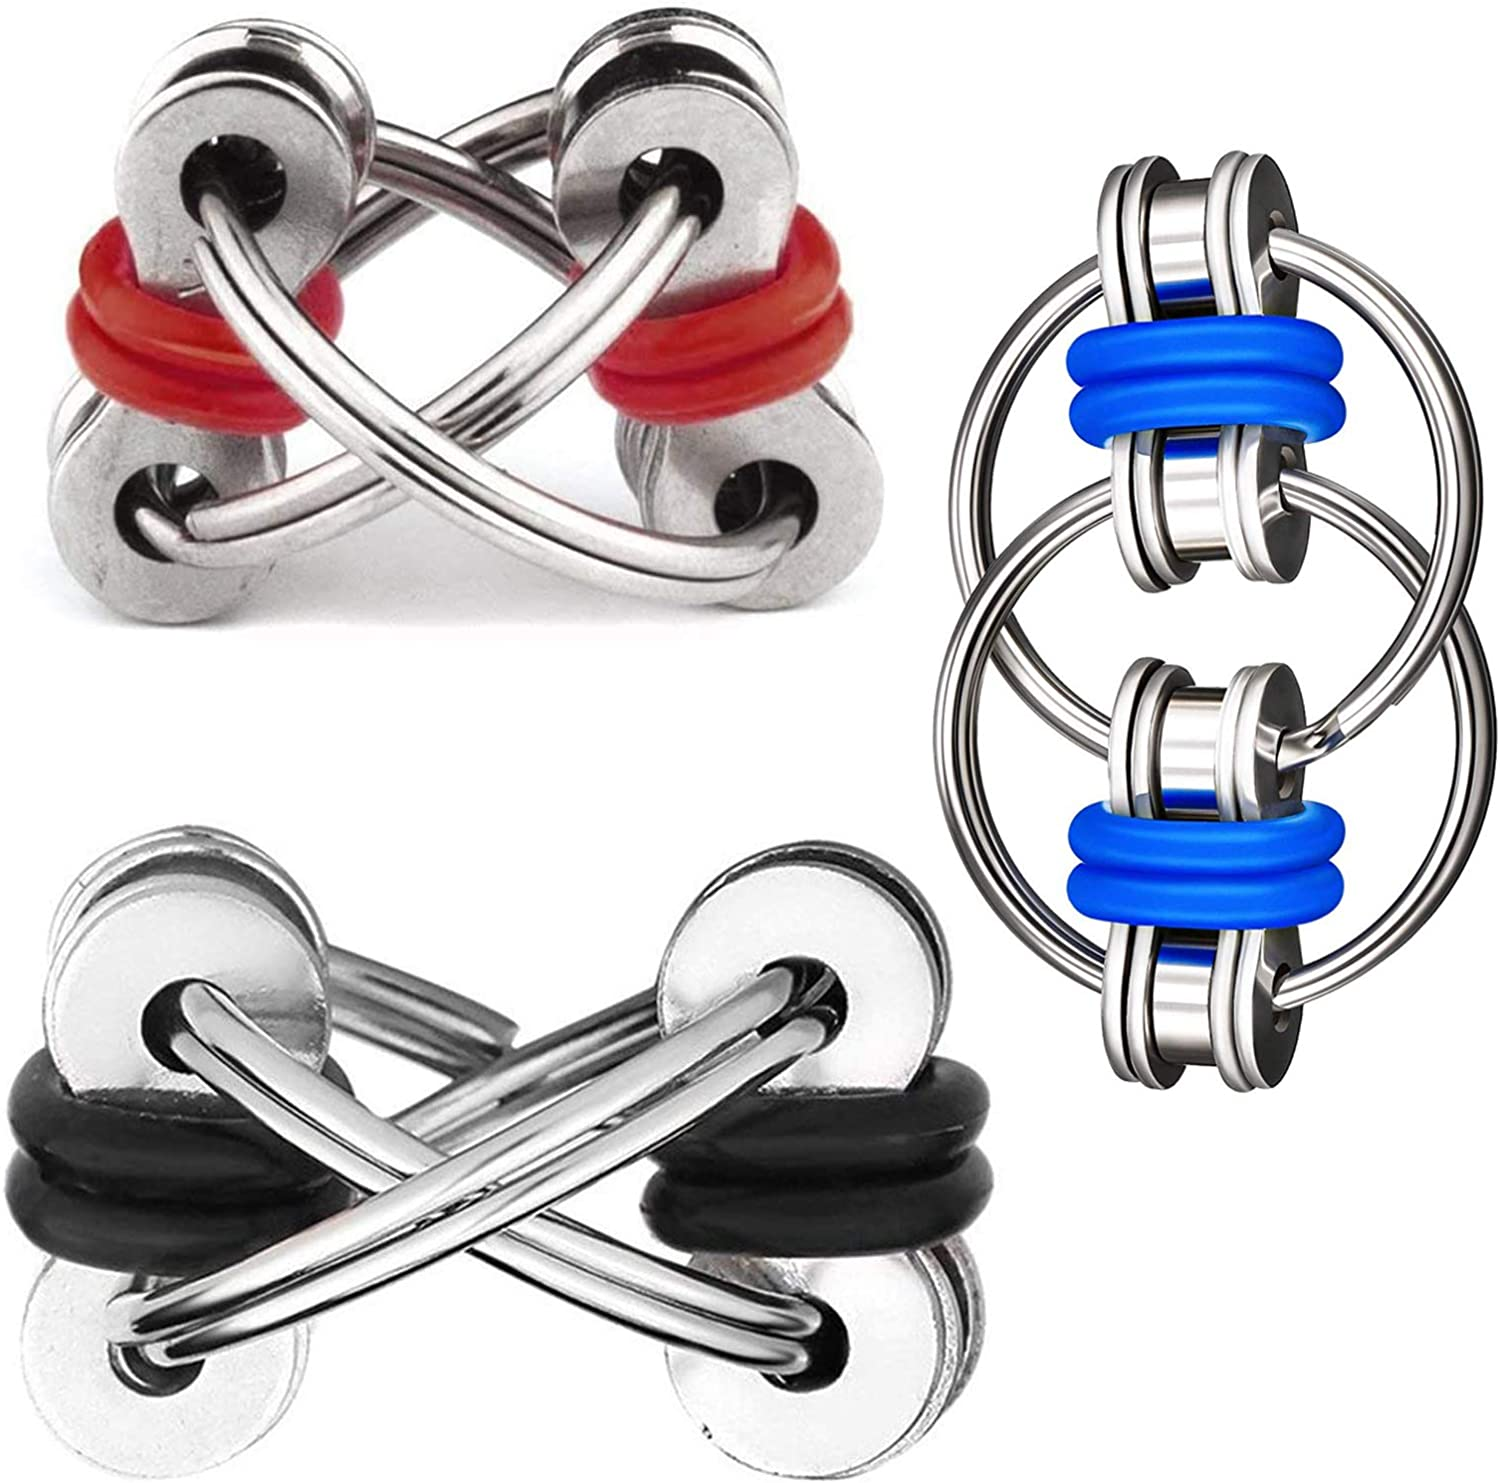 DBlosp Fidget Toy Flippy Chain Stress Anxiety Relief Chain ADHD and ADD, Anxiety Relief Bike Chain Toys for Adults and Teens (3 Pack)